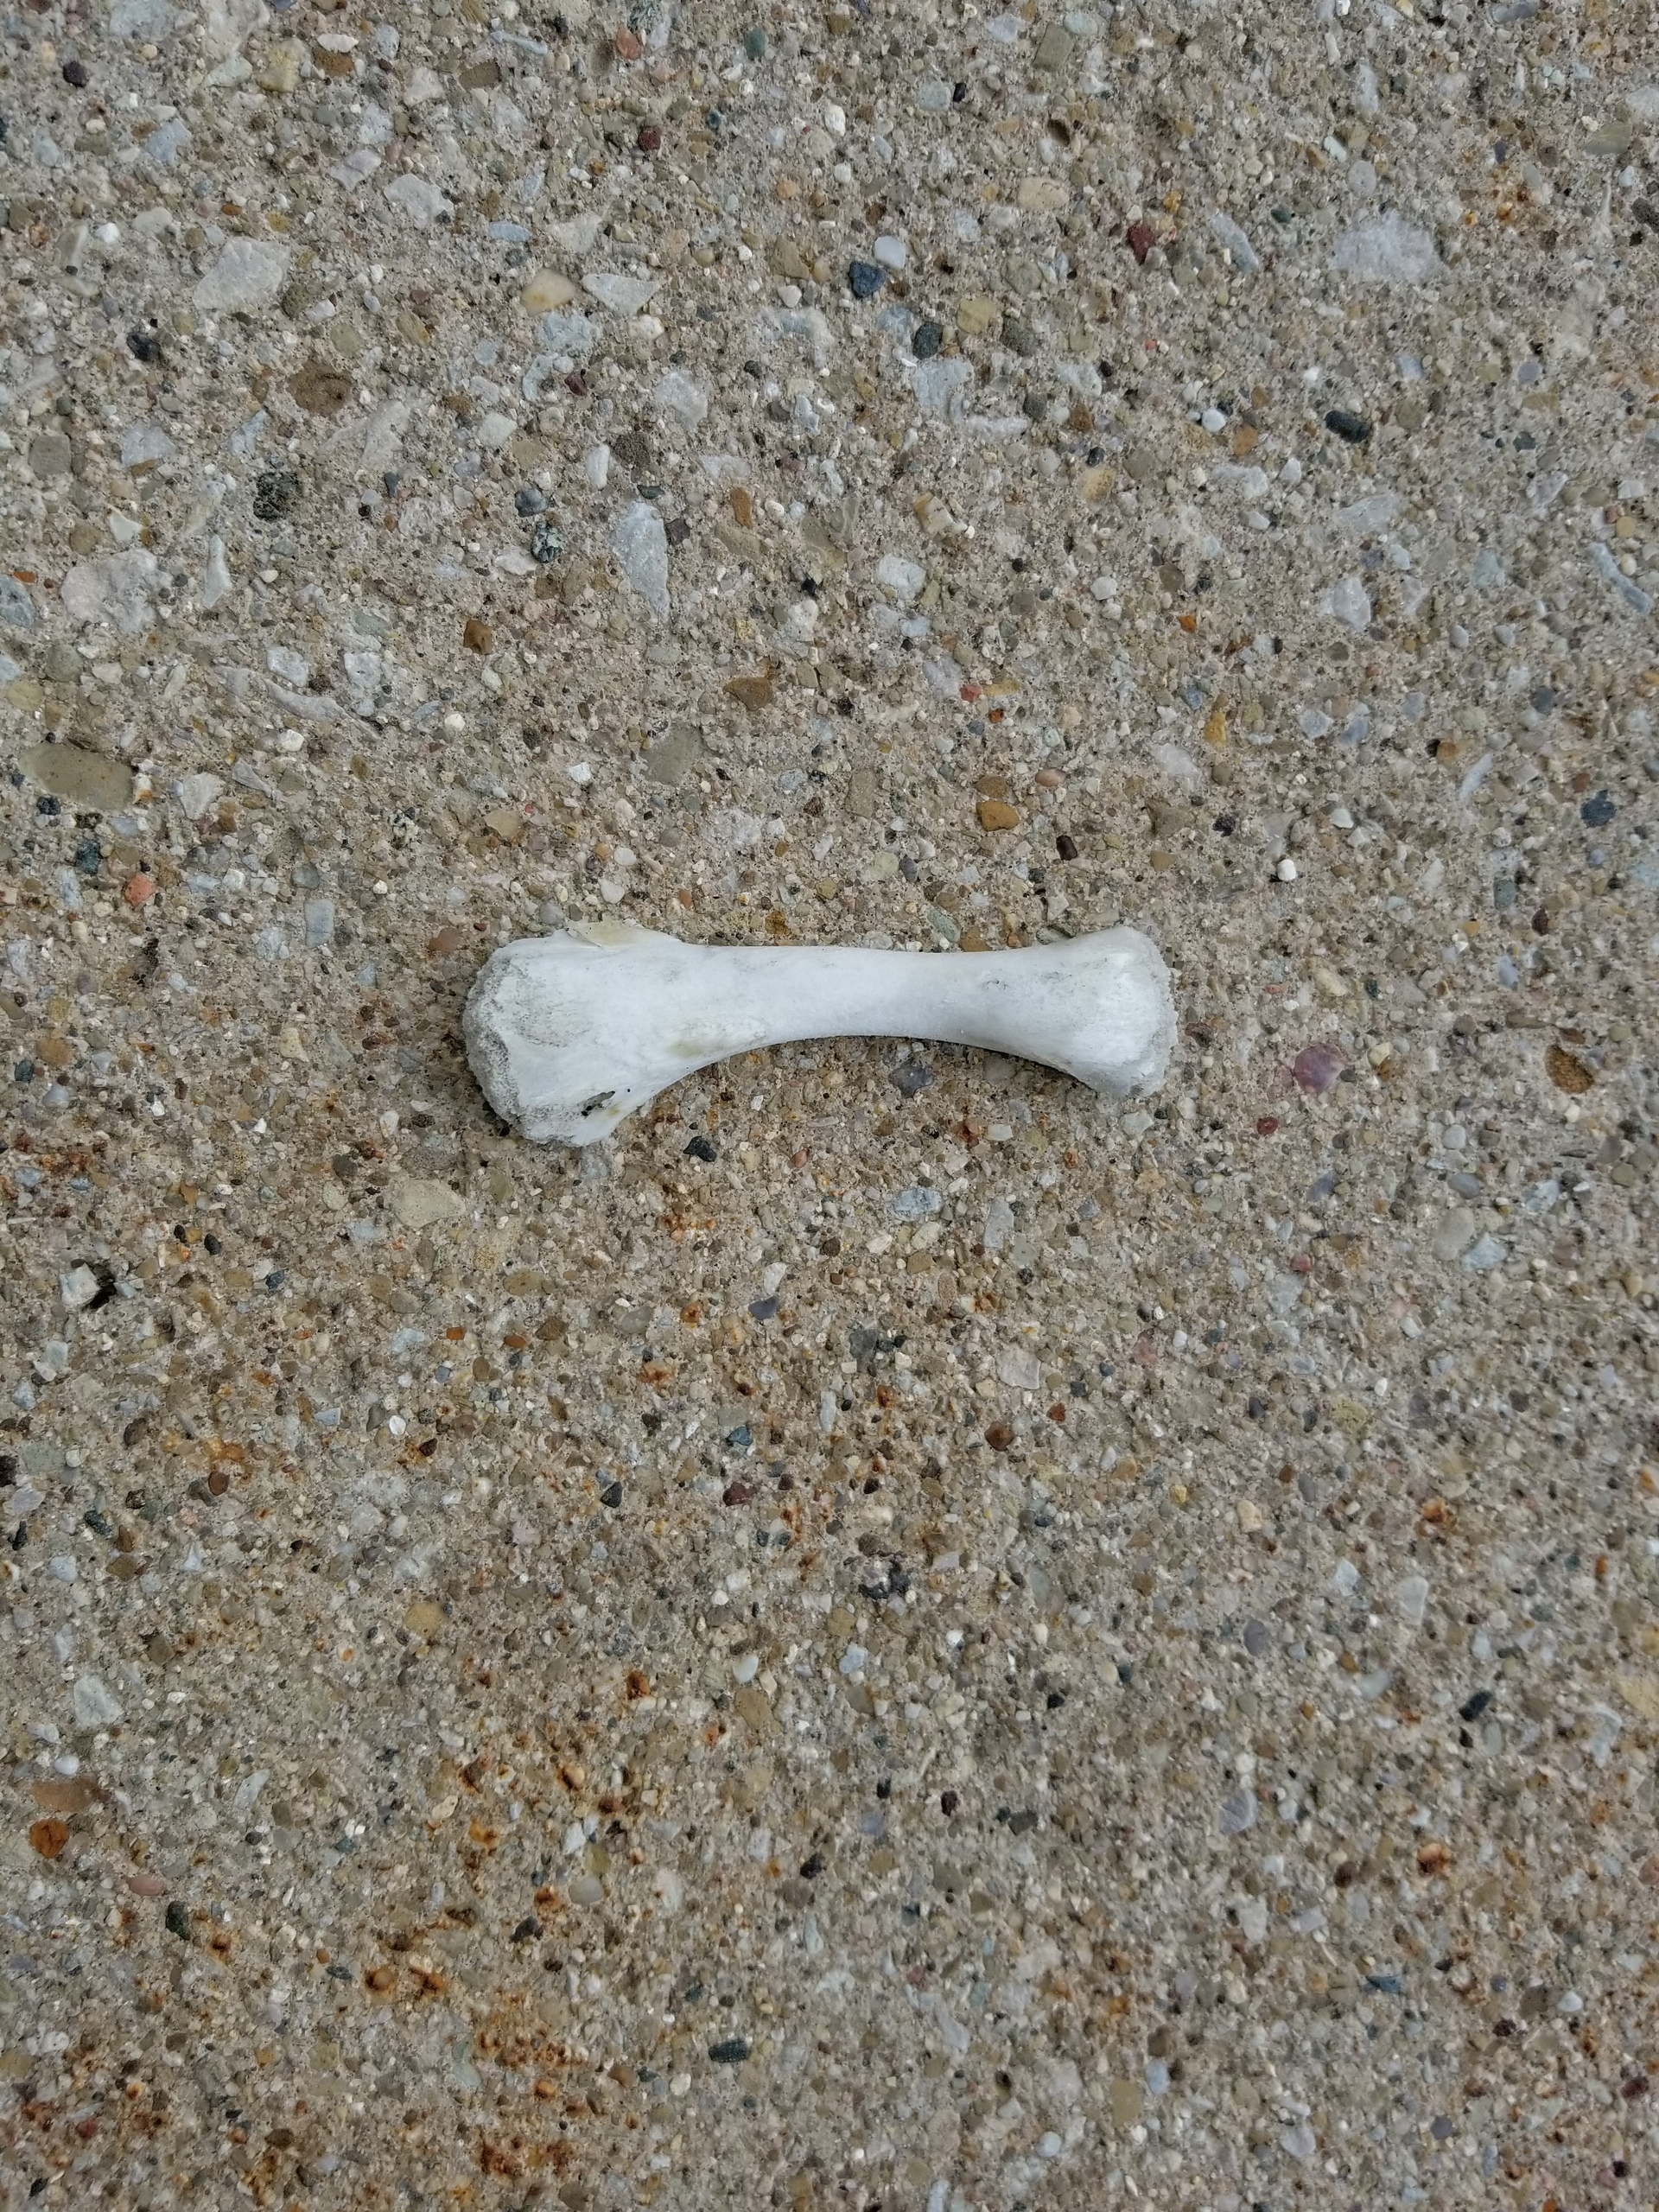 Bone on ground | codenamesailorearth, close-up, nature, no person